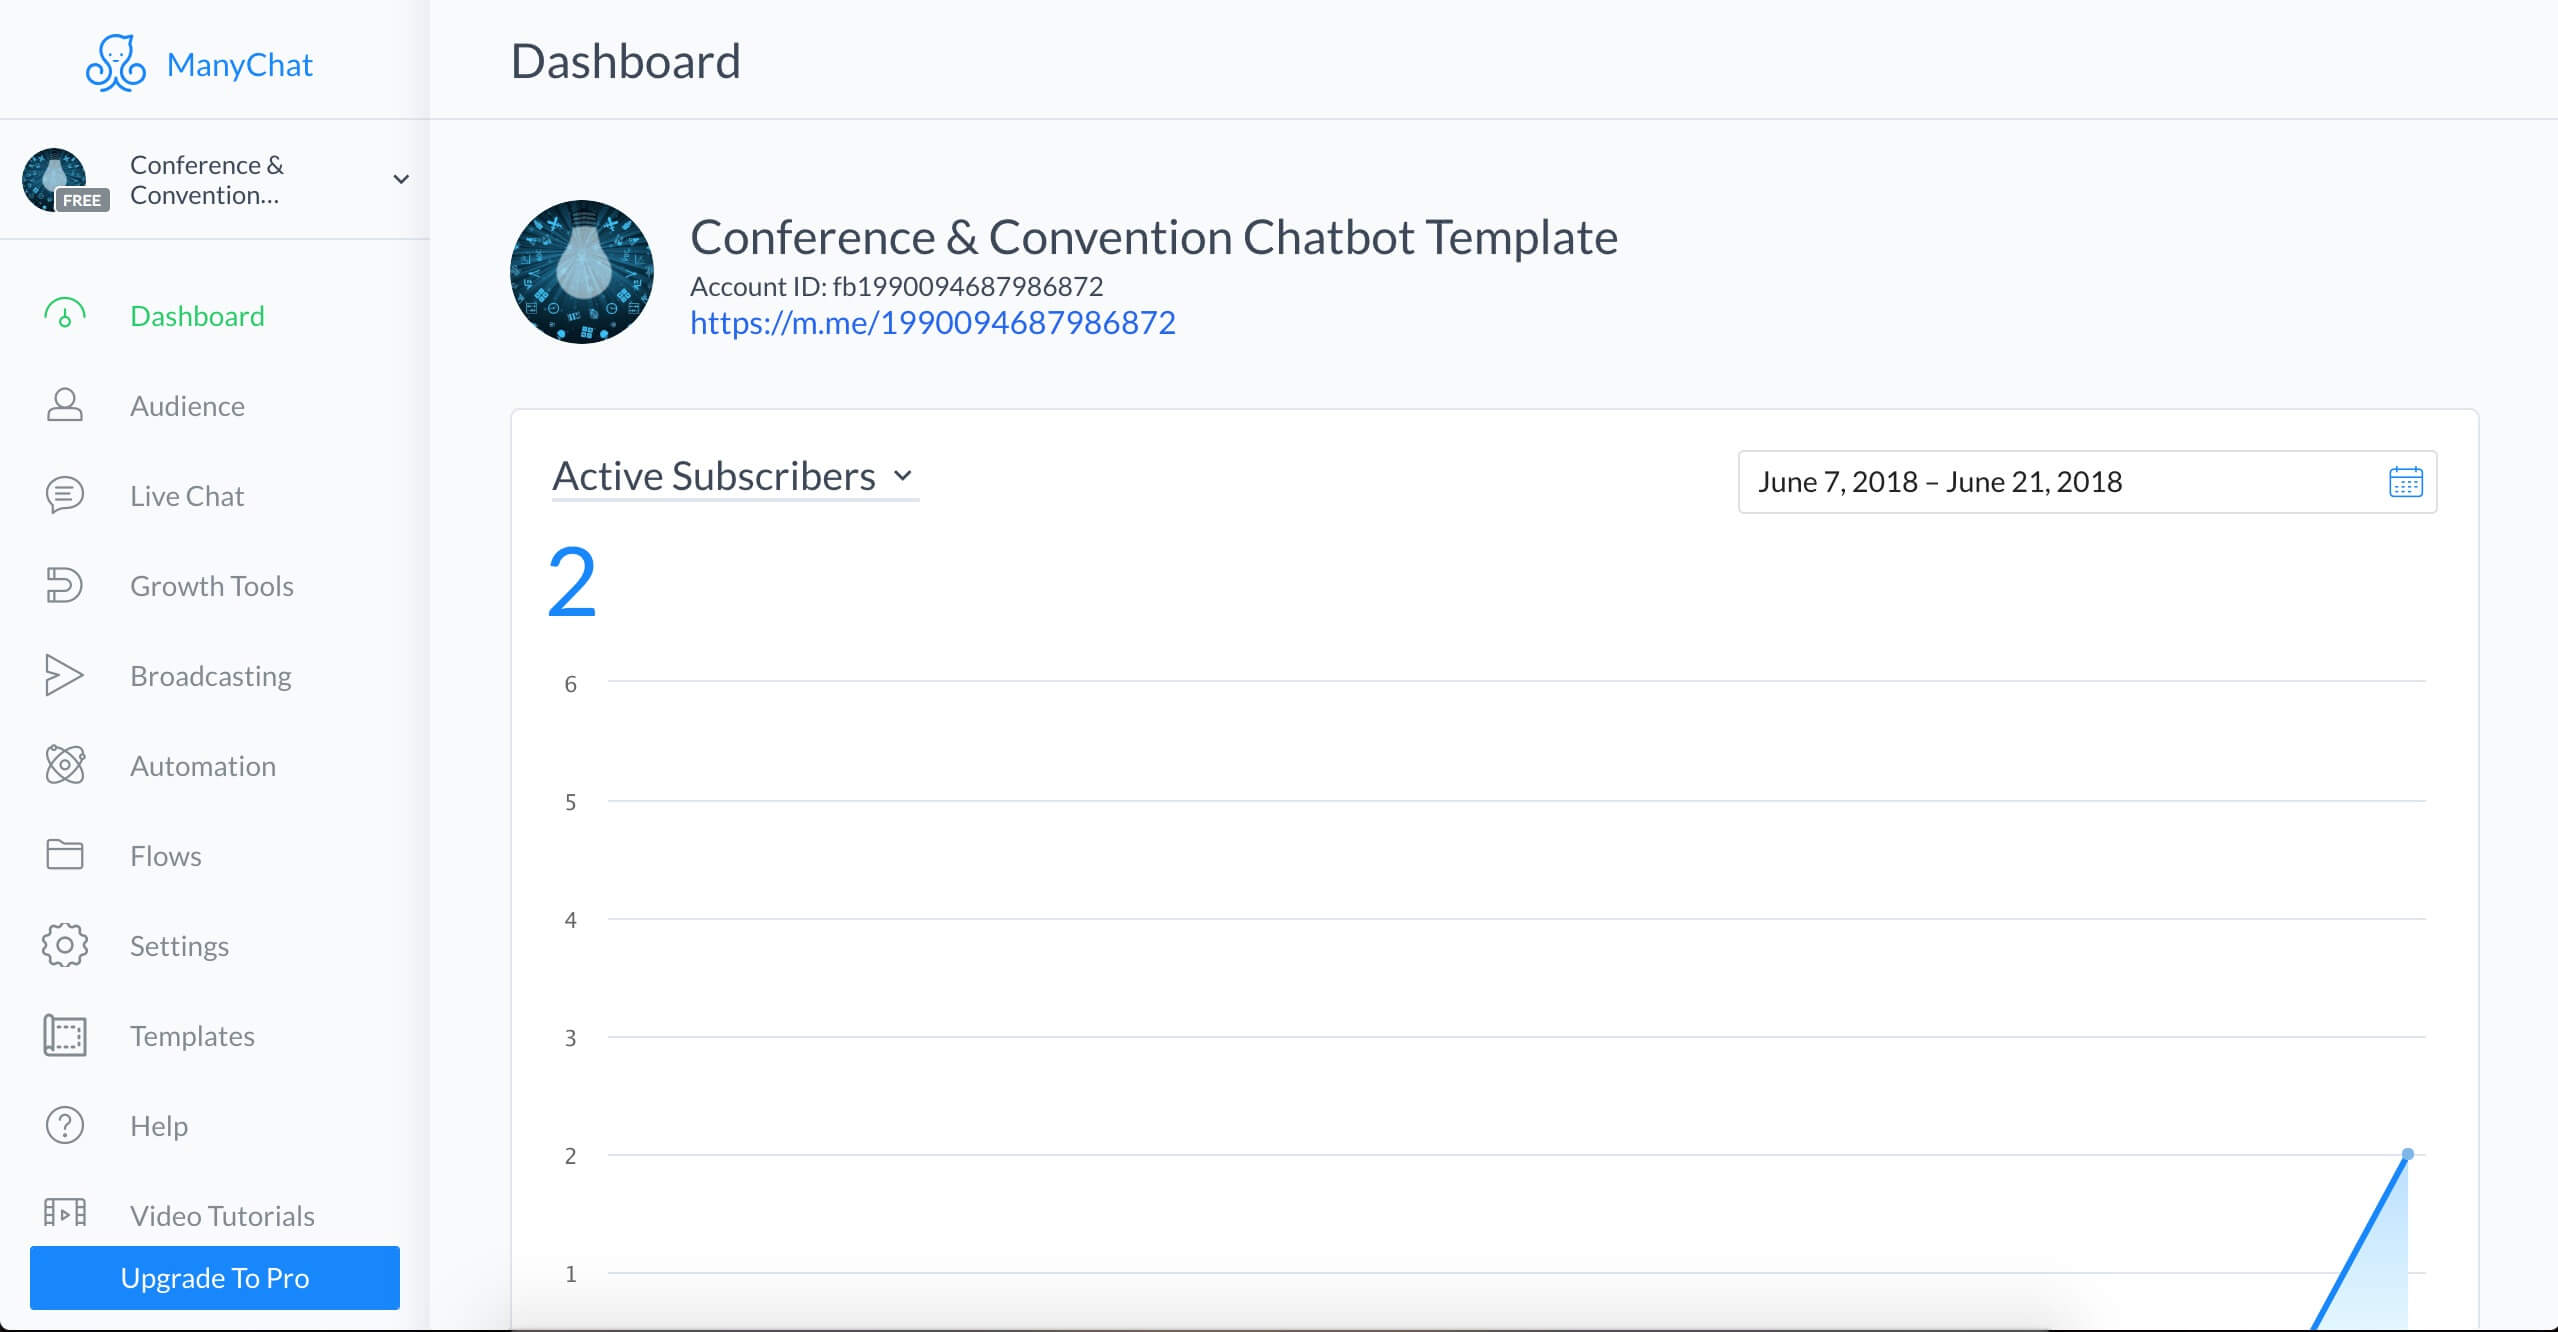 ManyChat flow editor screenshot for Conference Chatbot Template for Facebook Messenger